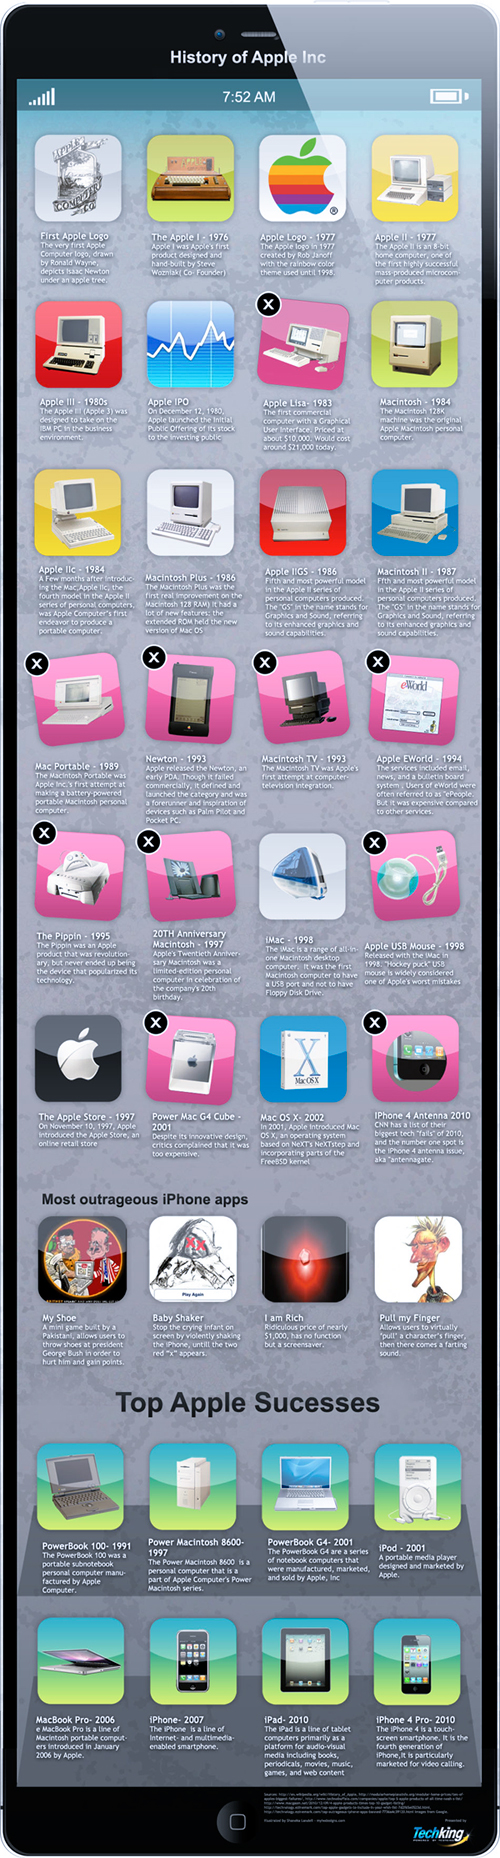 History-Of-Apple-Inc.-infographic